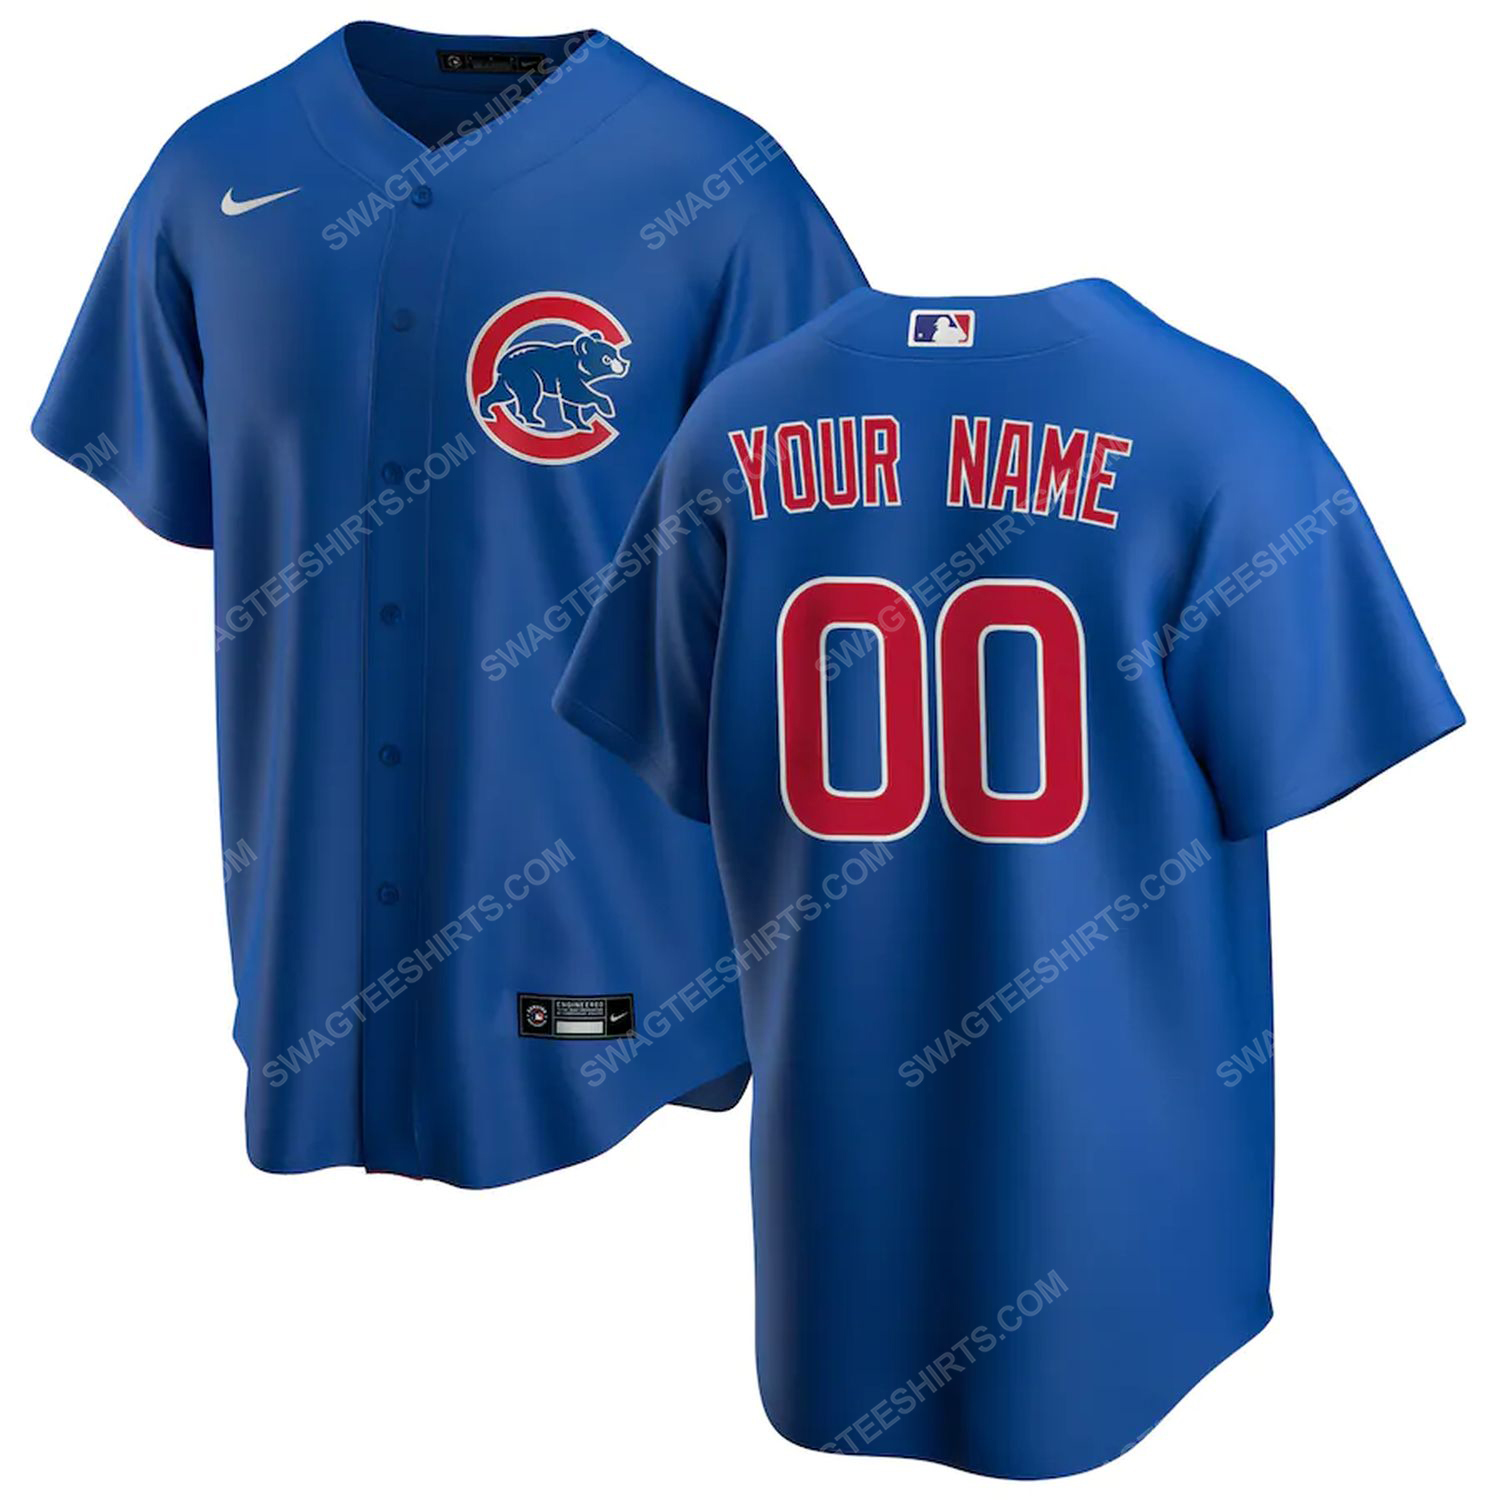 Personalized mlb chicago cubs team baseball jersey-royal